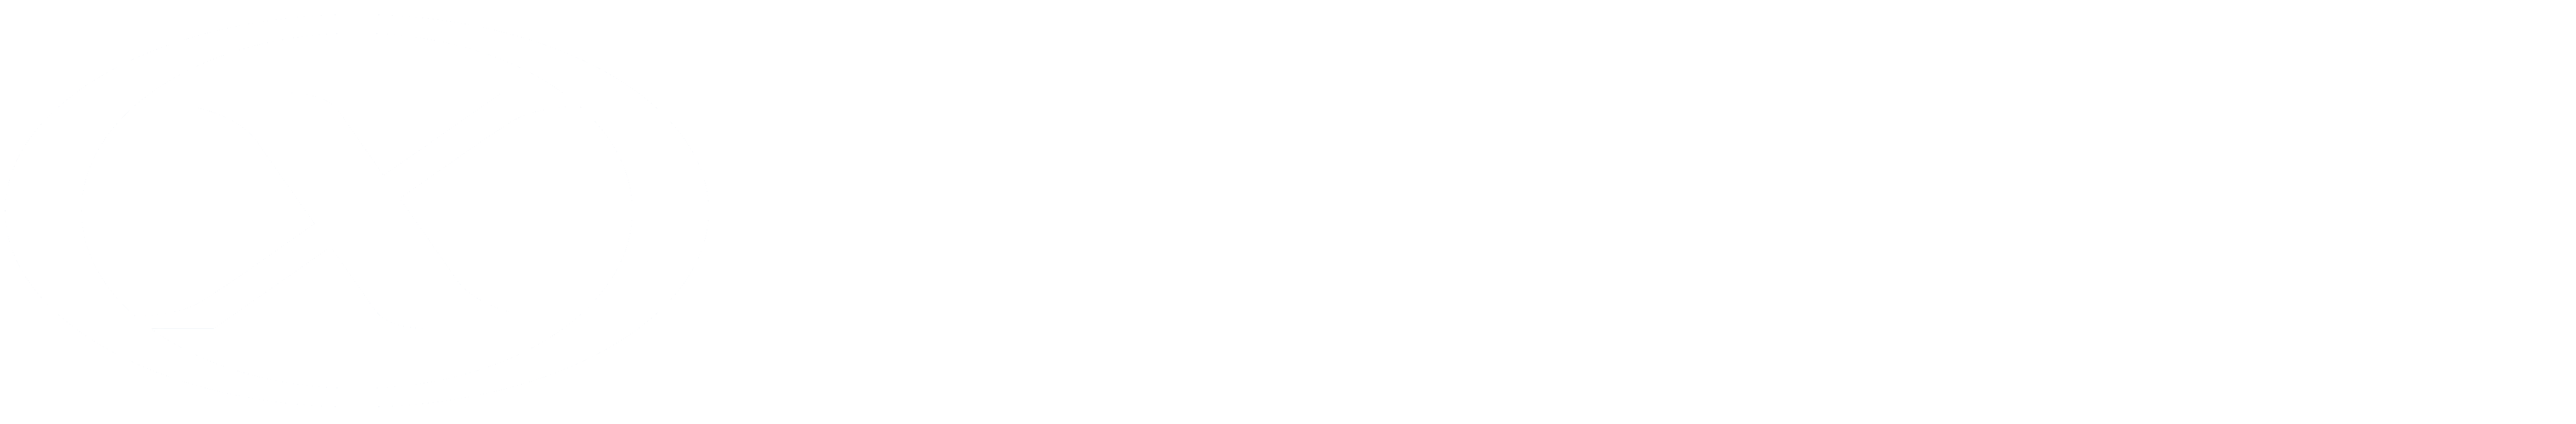 Nexios IT -  logo